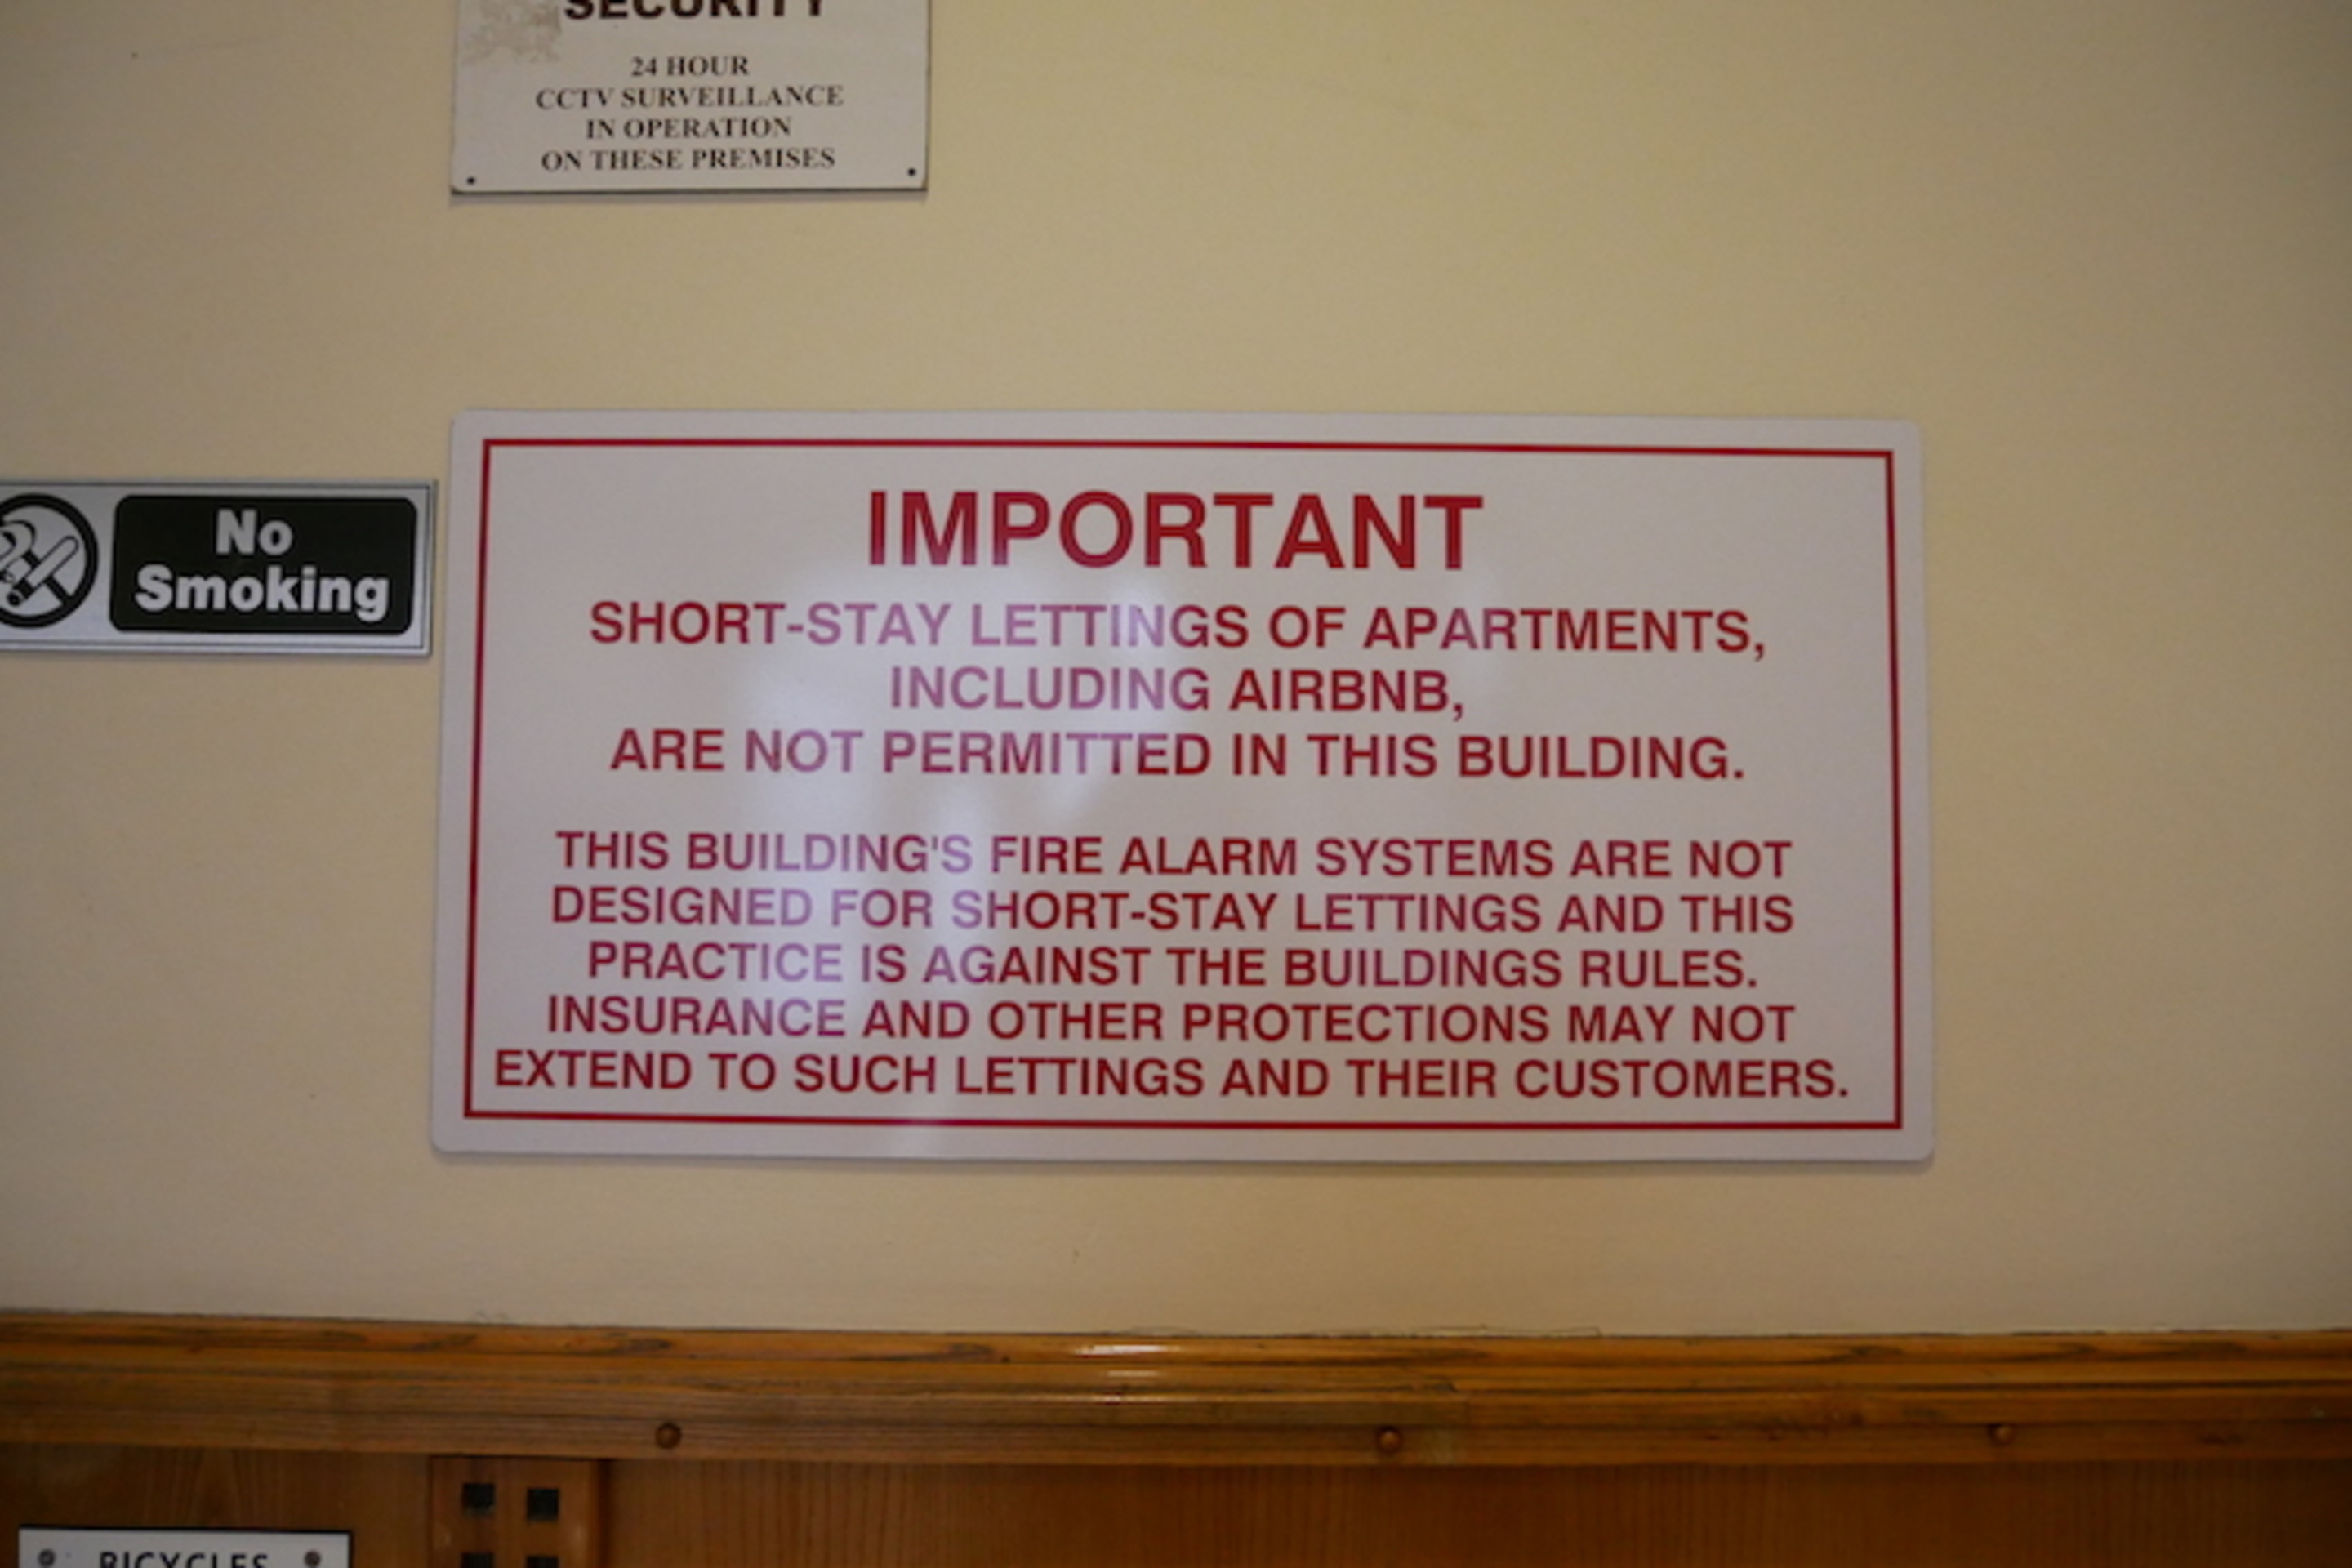 The Sign Says No Short-Term Lets, So Why Is There | Dublin Inquirer